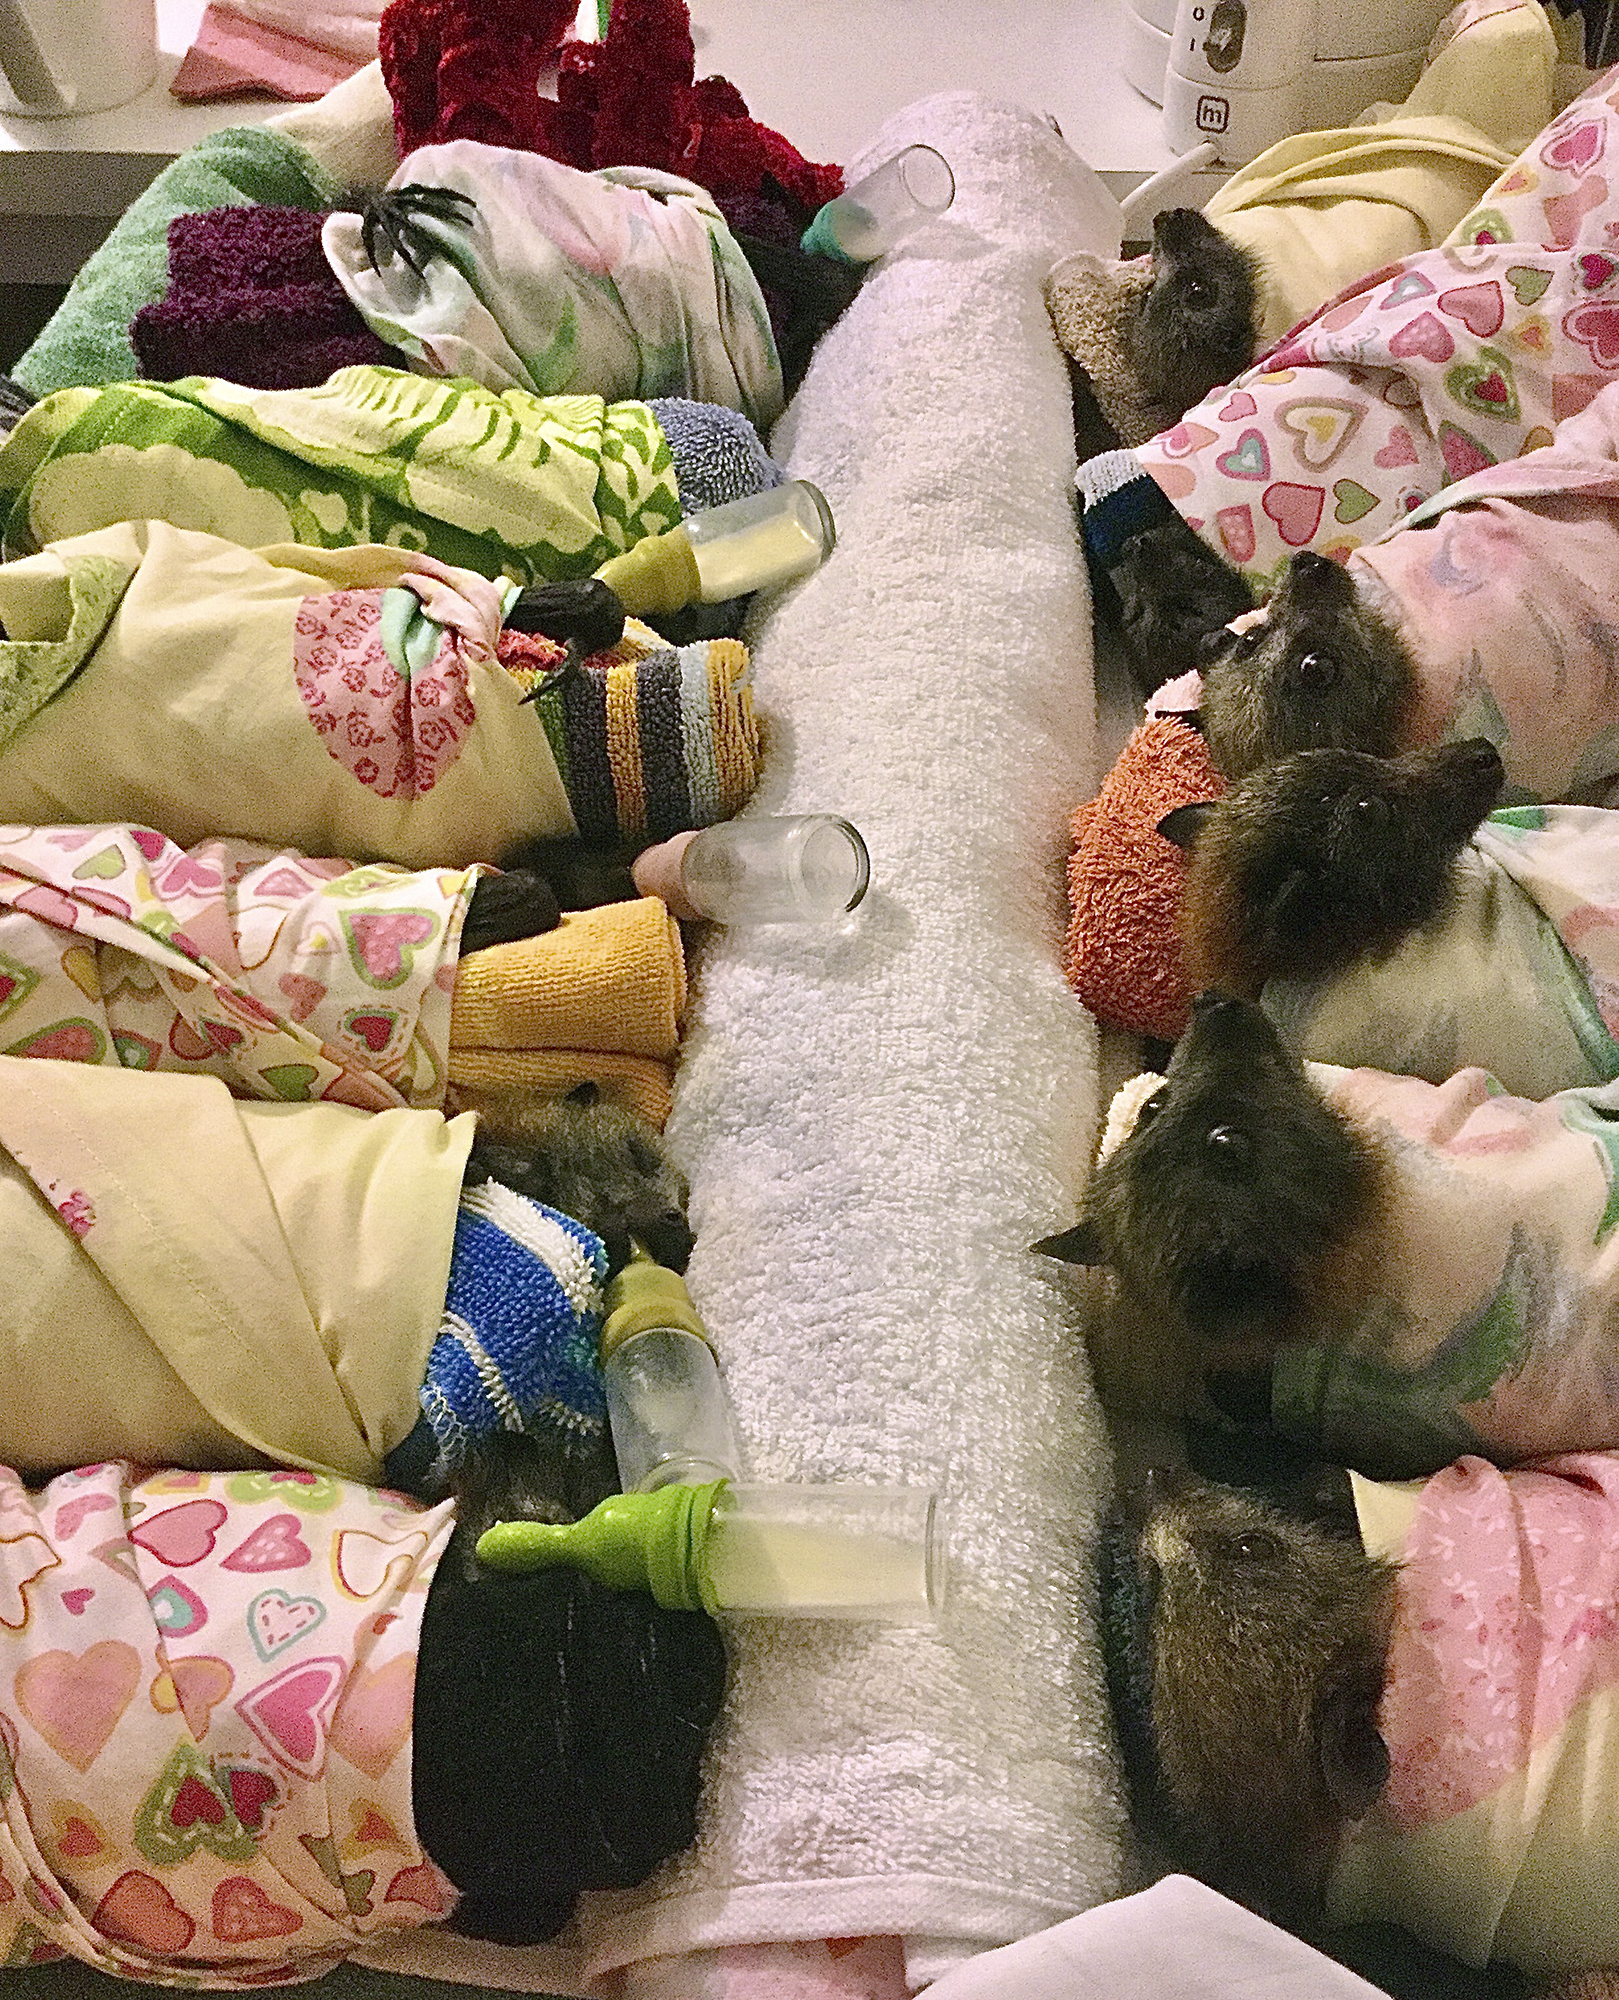 Grey-headed Flying Fox bats are prepared for a feeding at the Uralla, Australia. The bats are swaddled in flannel wraps similar to those being made by thousands of crafters worldwide who are using their sewing, knitting and crocheting skills to make items for wildlife injured in the Australian brush fires.